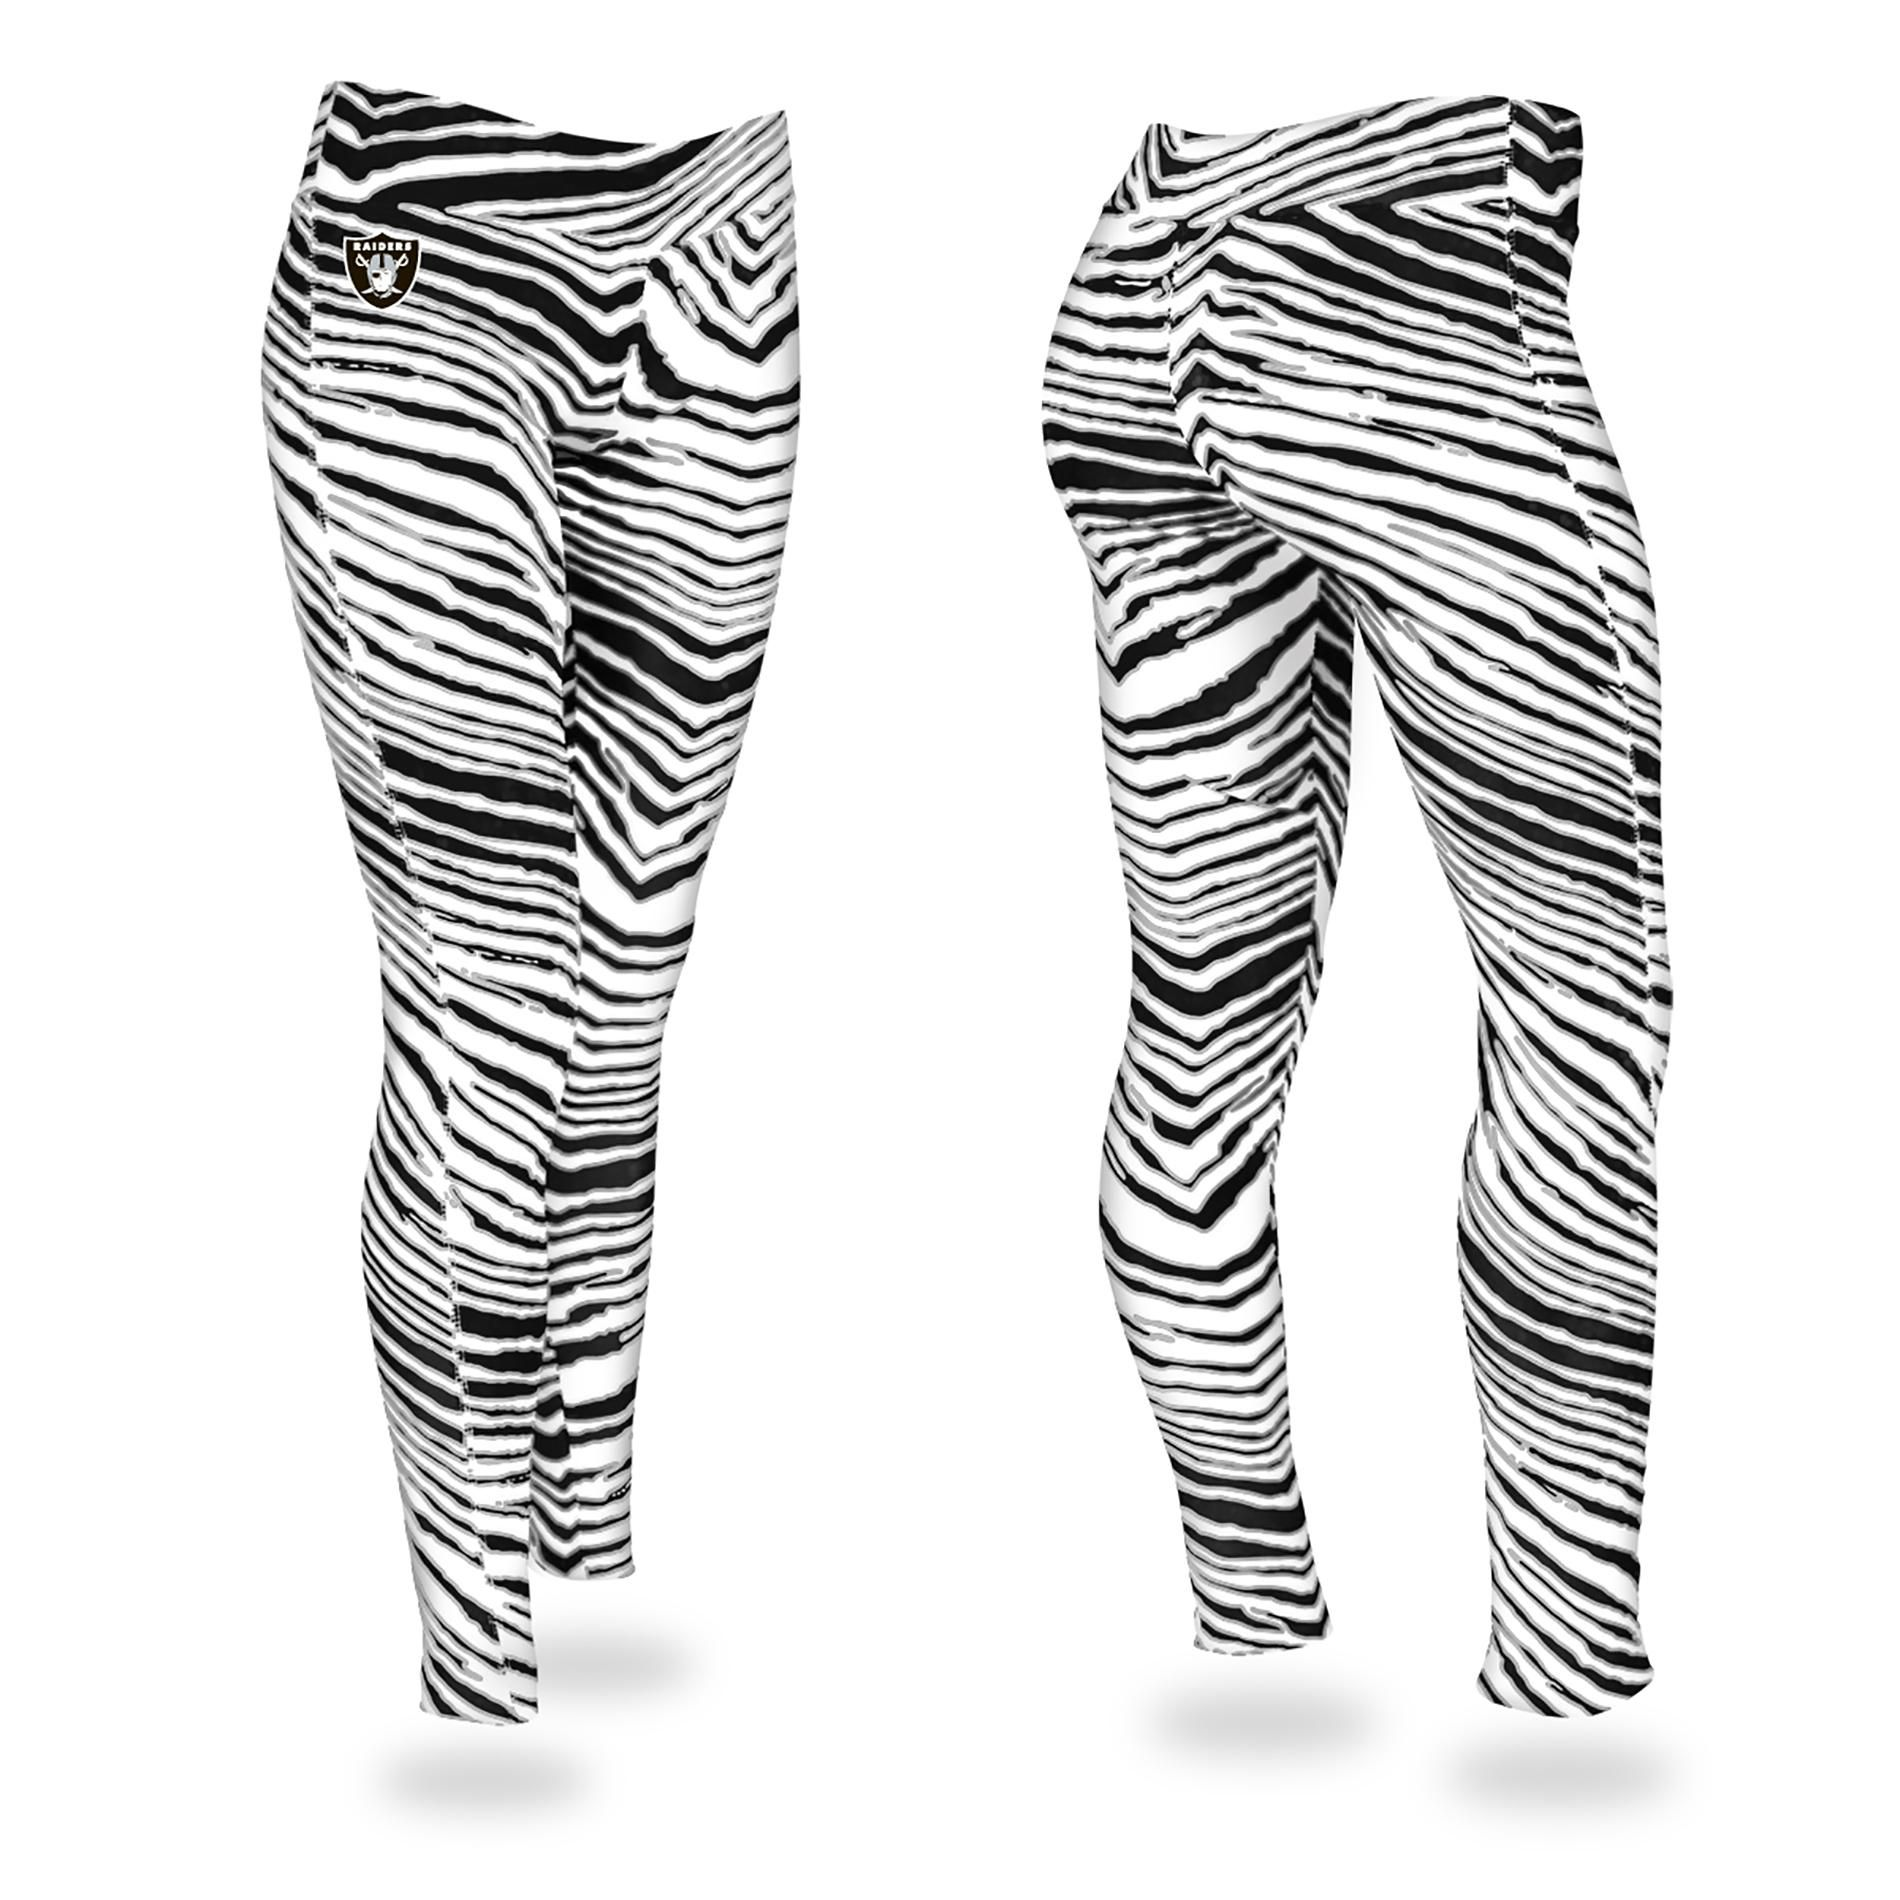 Kmart Deals On Furniture Toys Clothes Tools Tablets Zebra Leggings Women Leggings